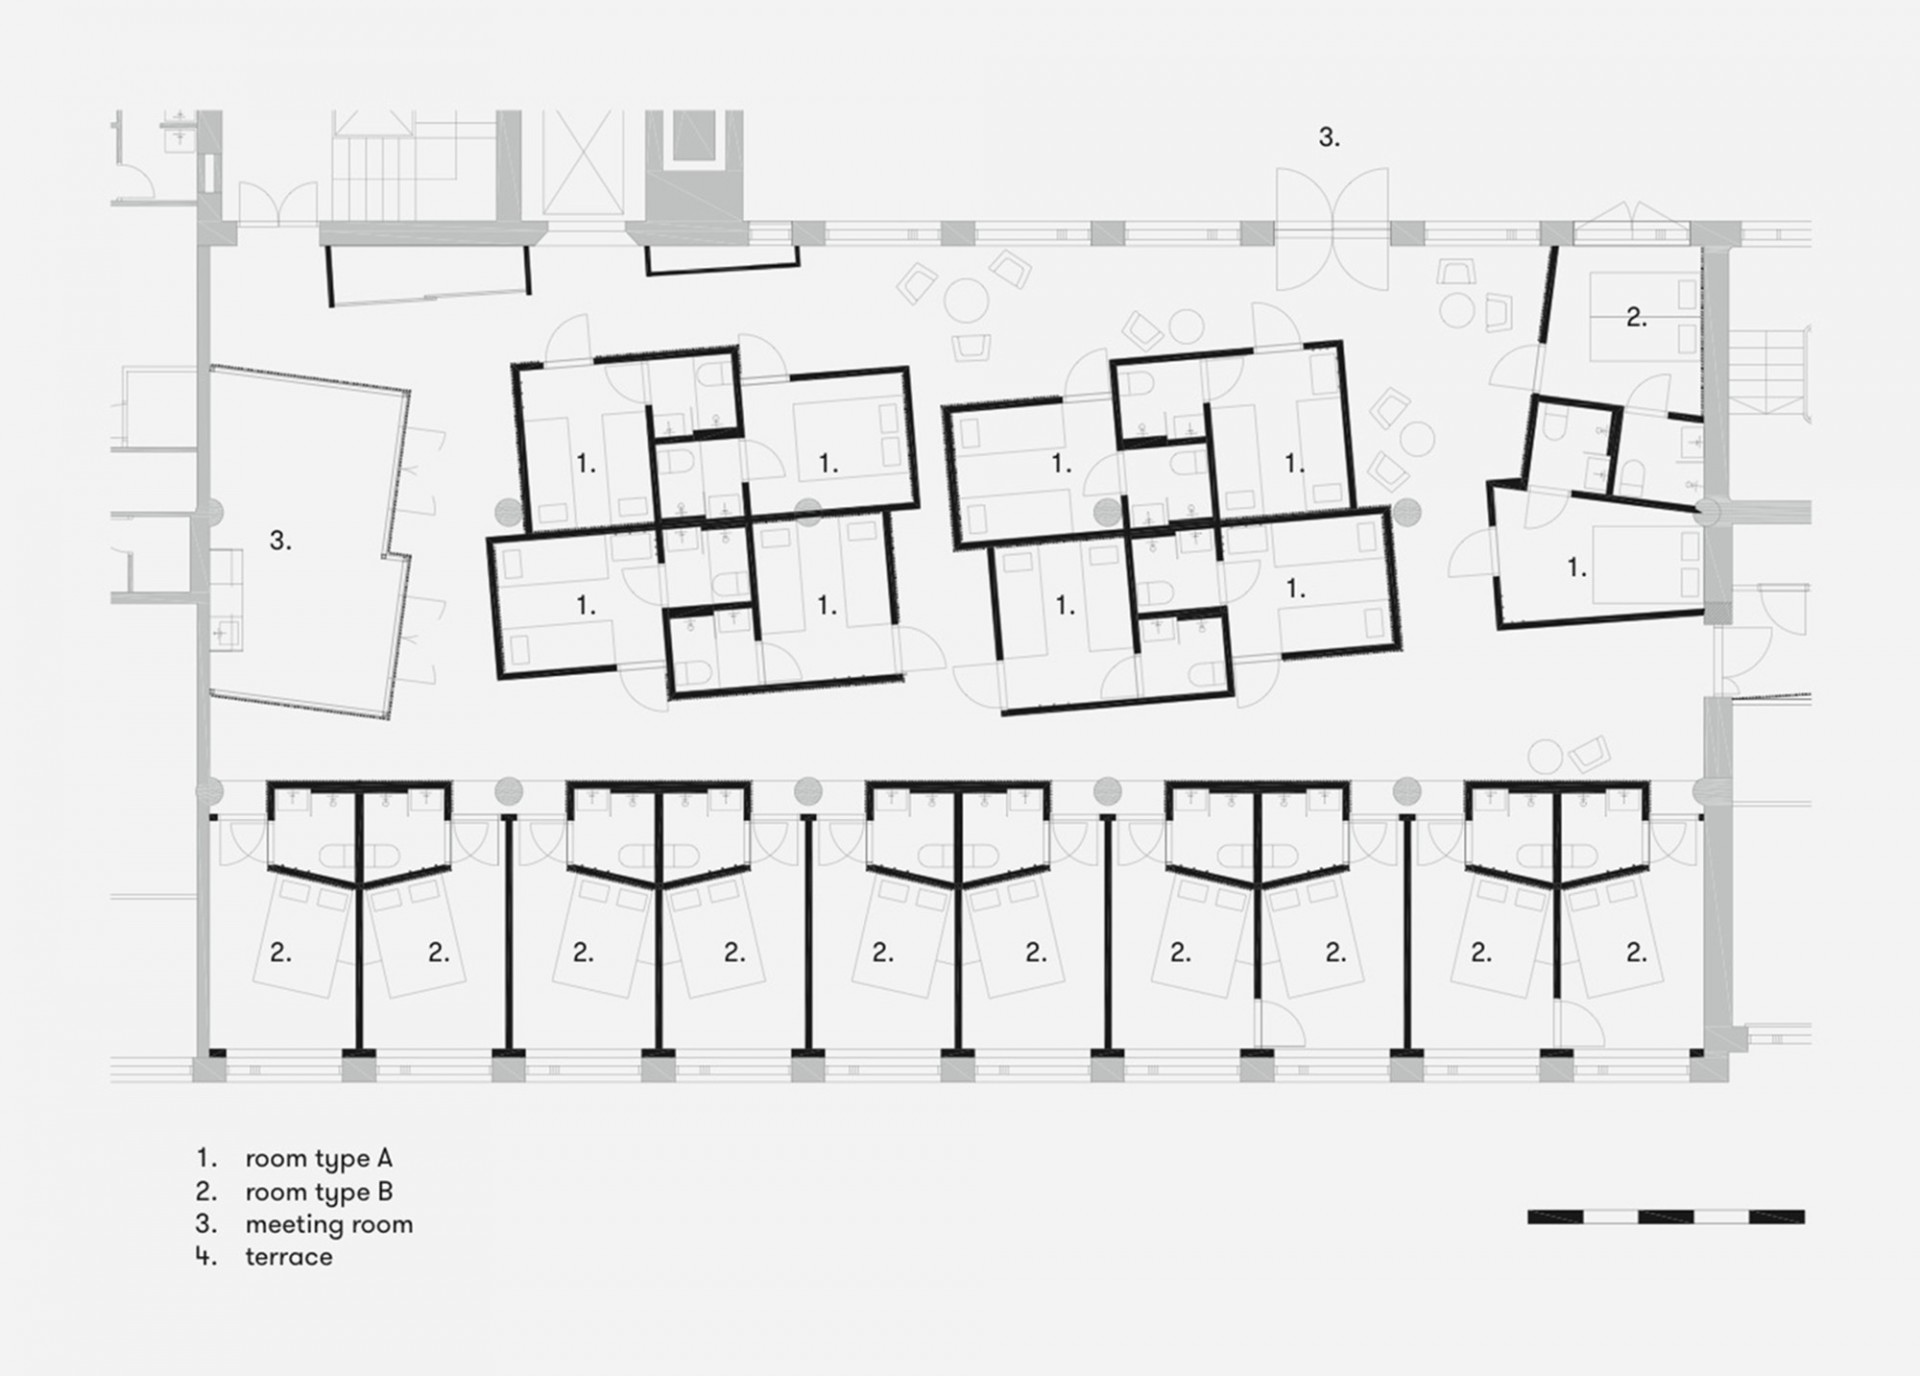 Studio_Puisto_Dreamhotel_floorplan_1_200